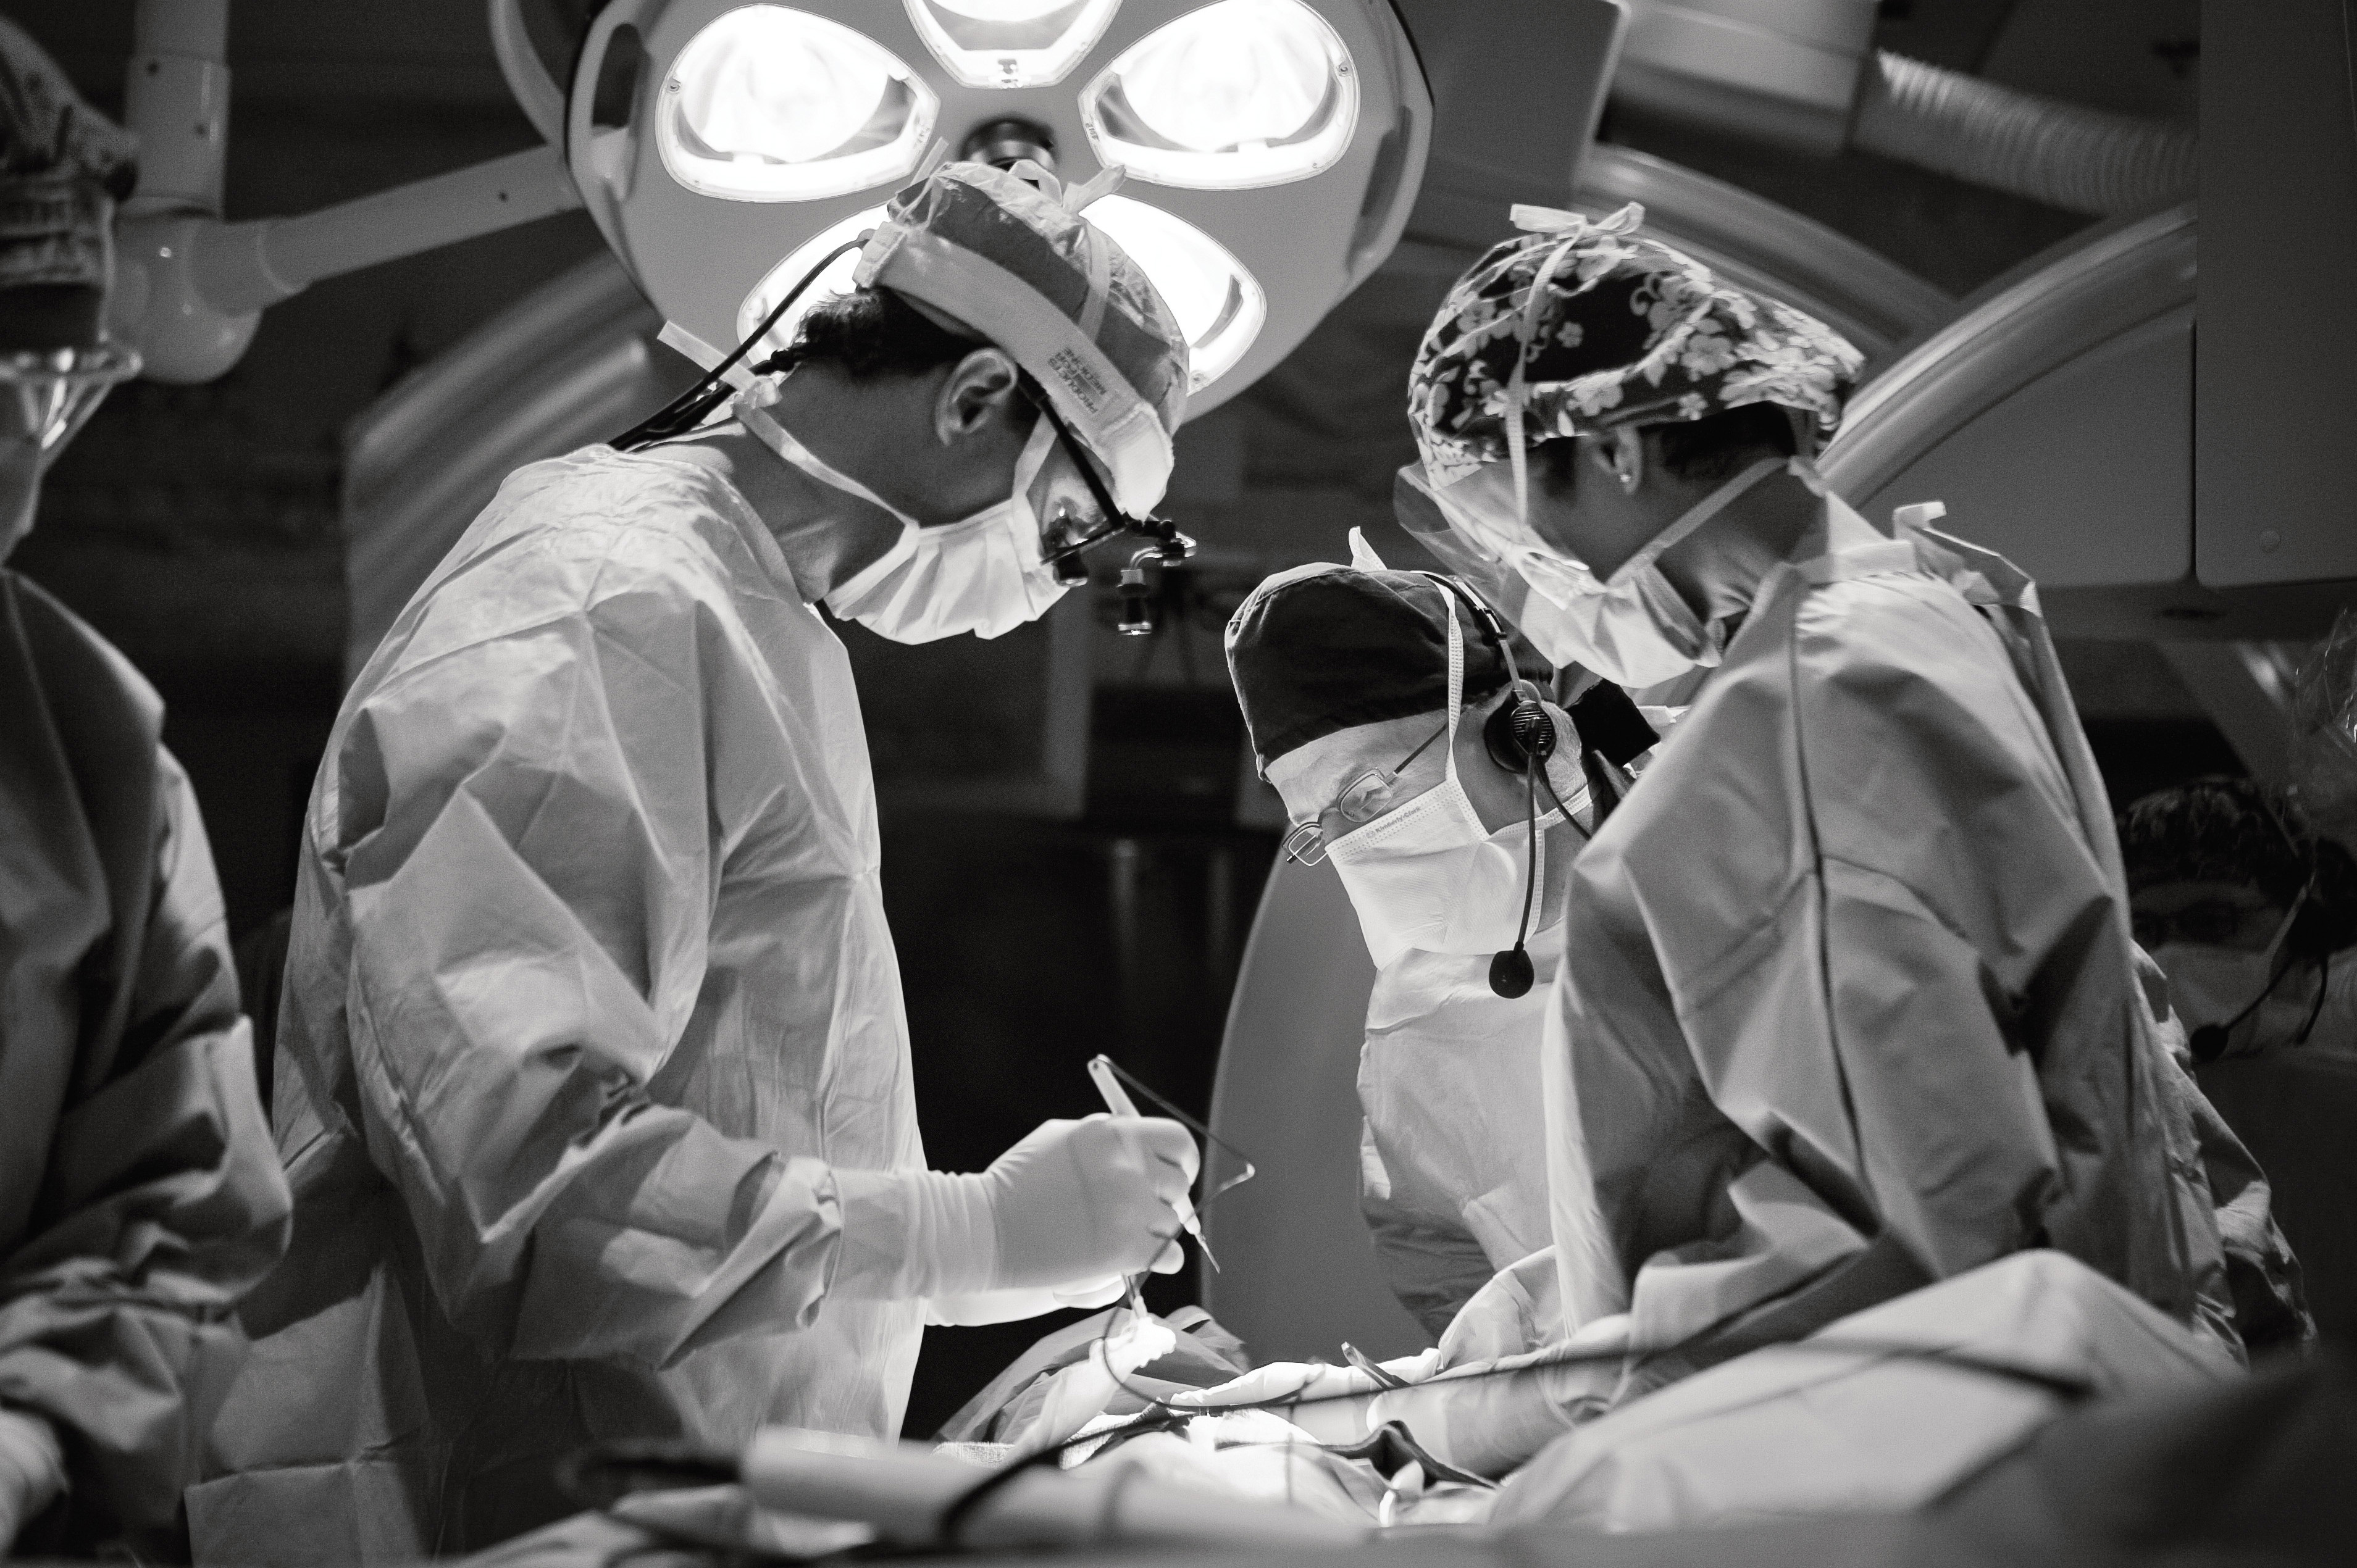 Heart Surgeons in Operating Room